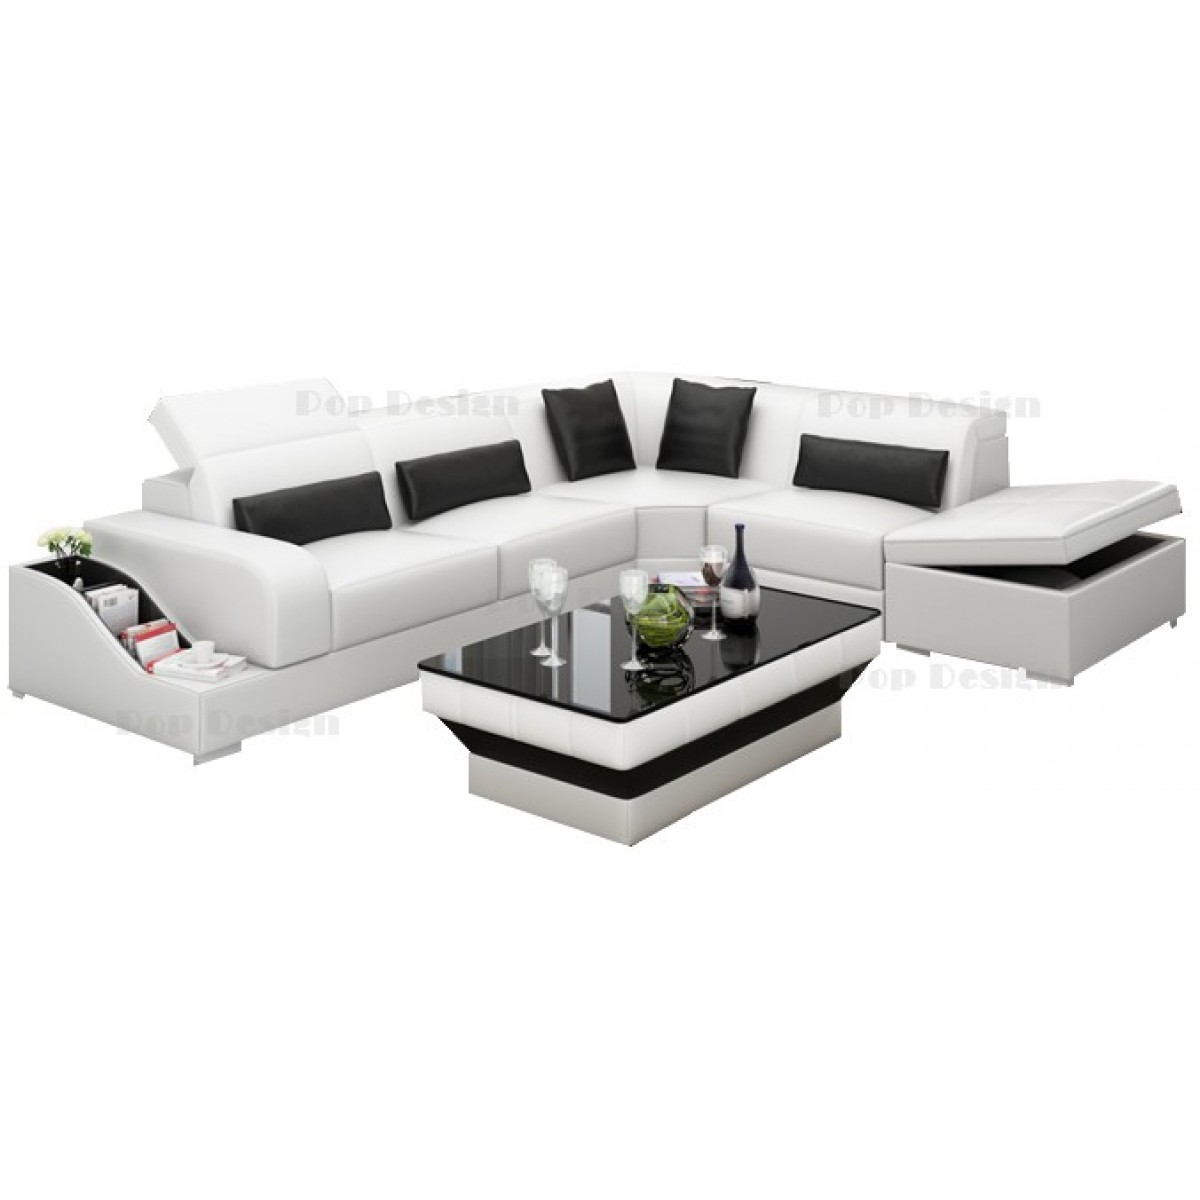 grand canap d 39 angle en cuir jazz avec coffre de rangement pop desig. Black Bedroom Furniture Sets. Home Design Ideas